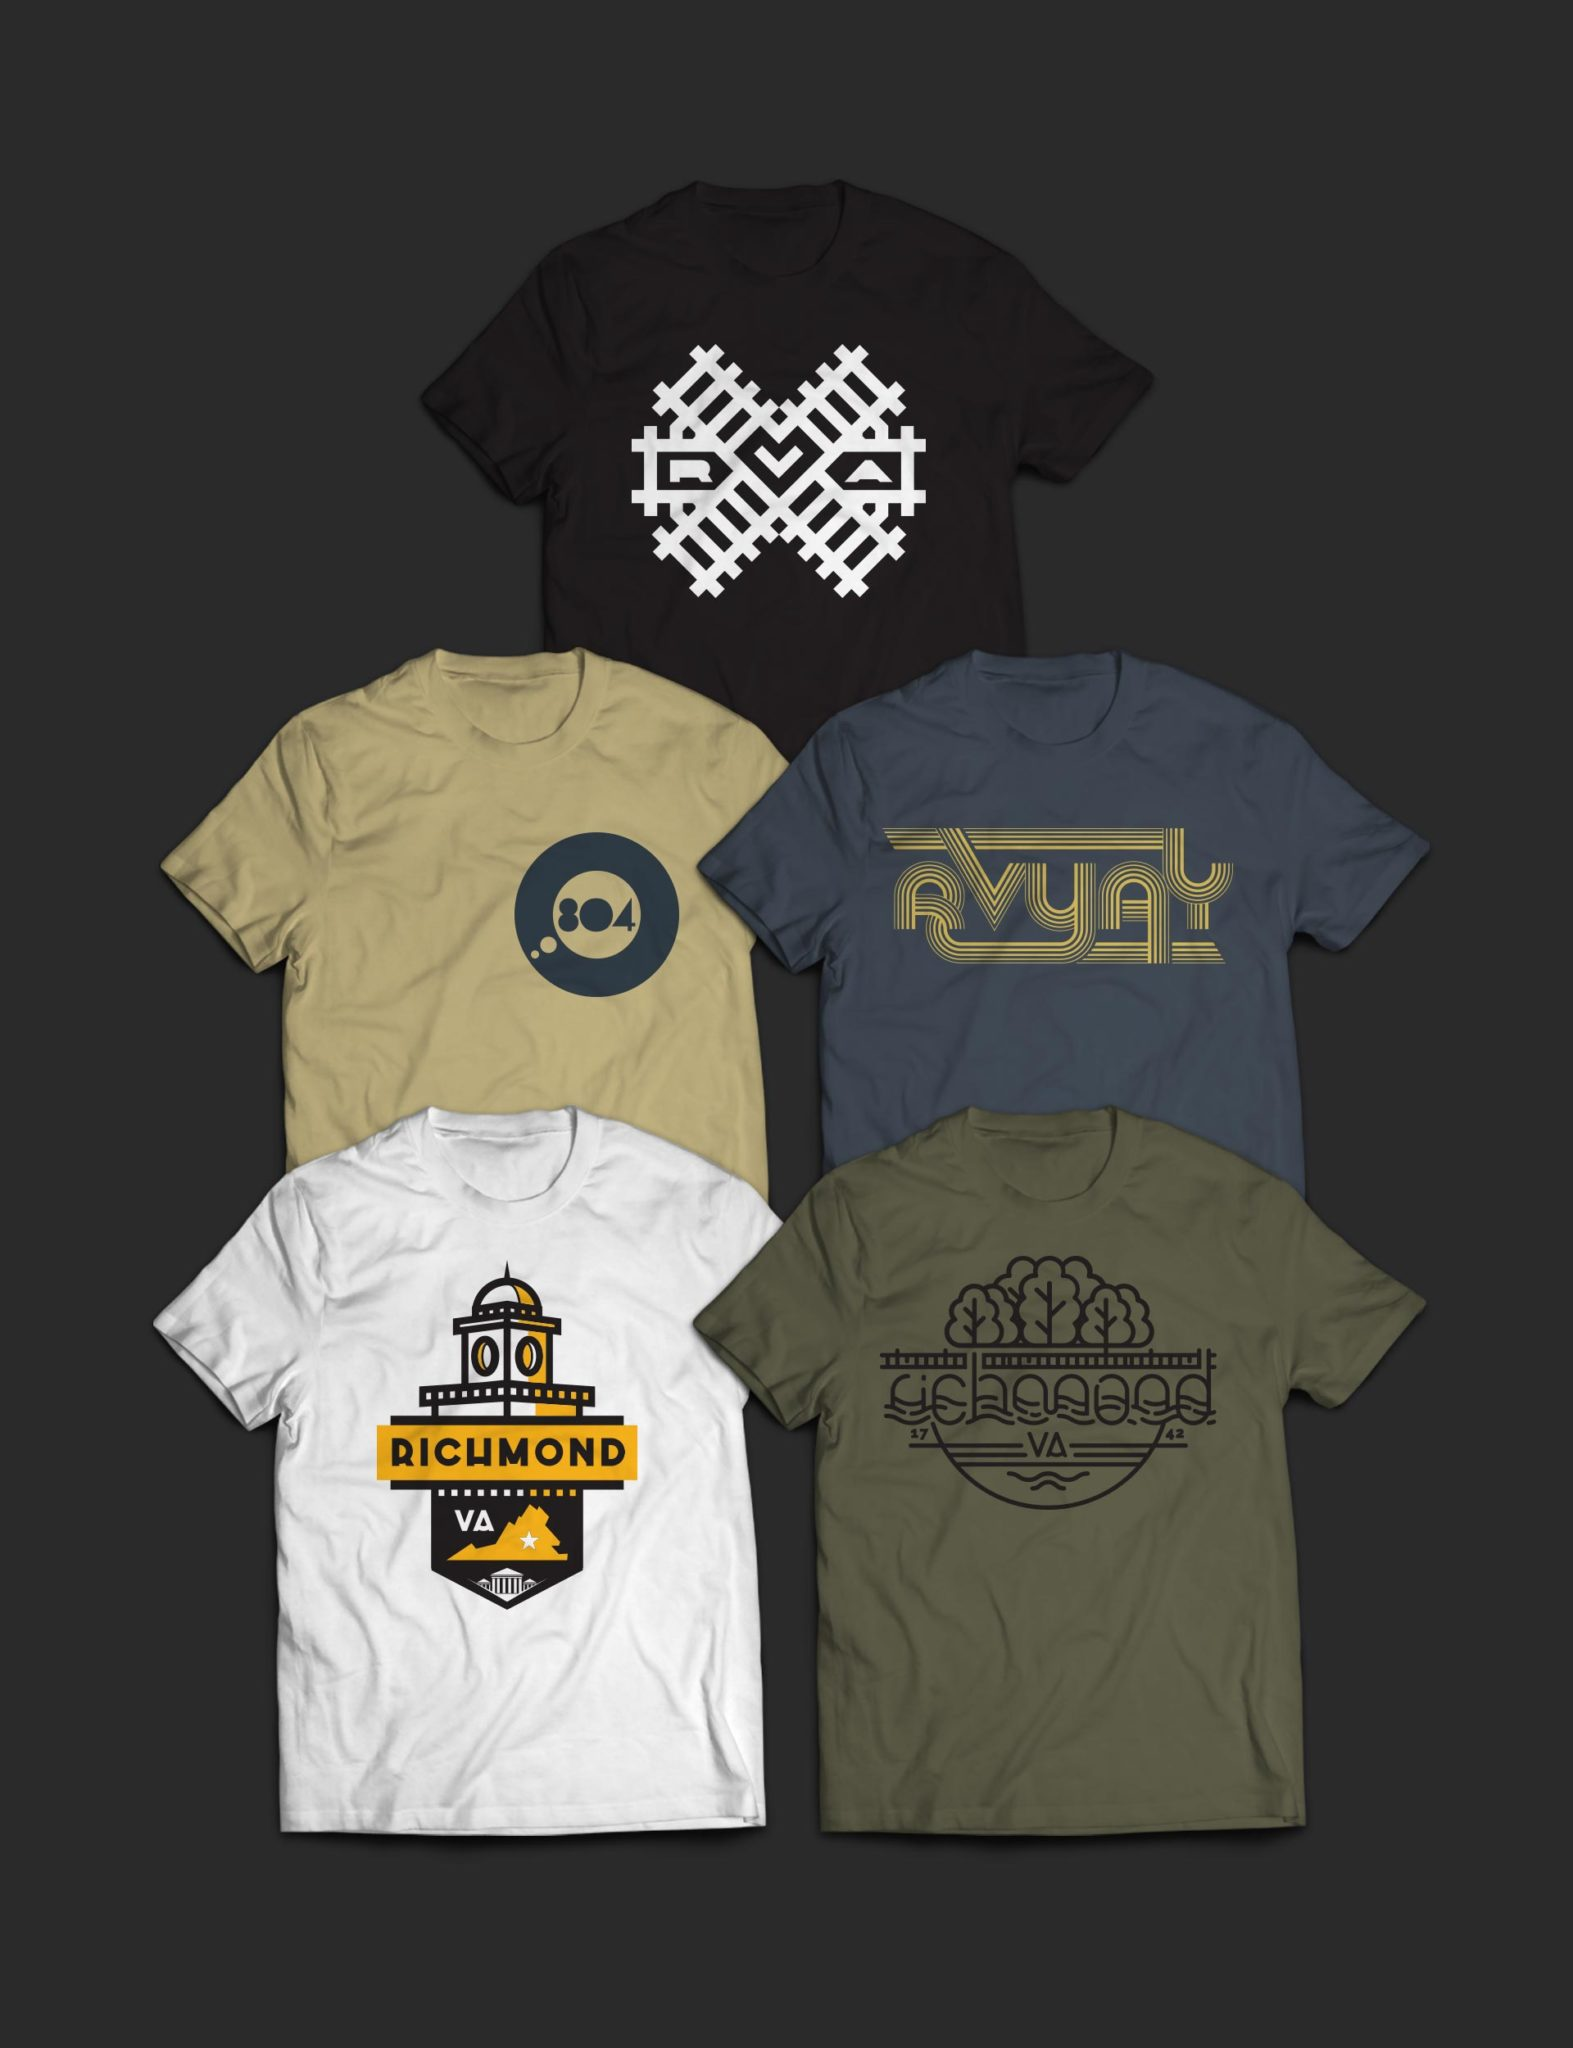 five Richmond themed t-shirts